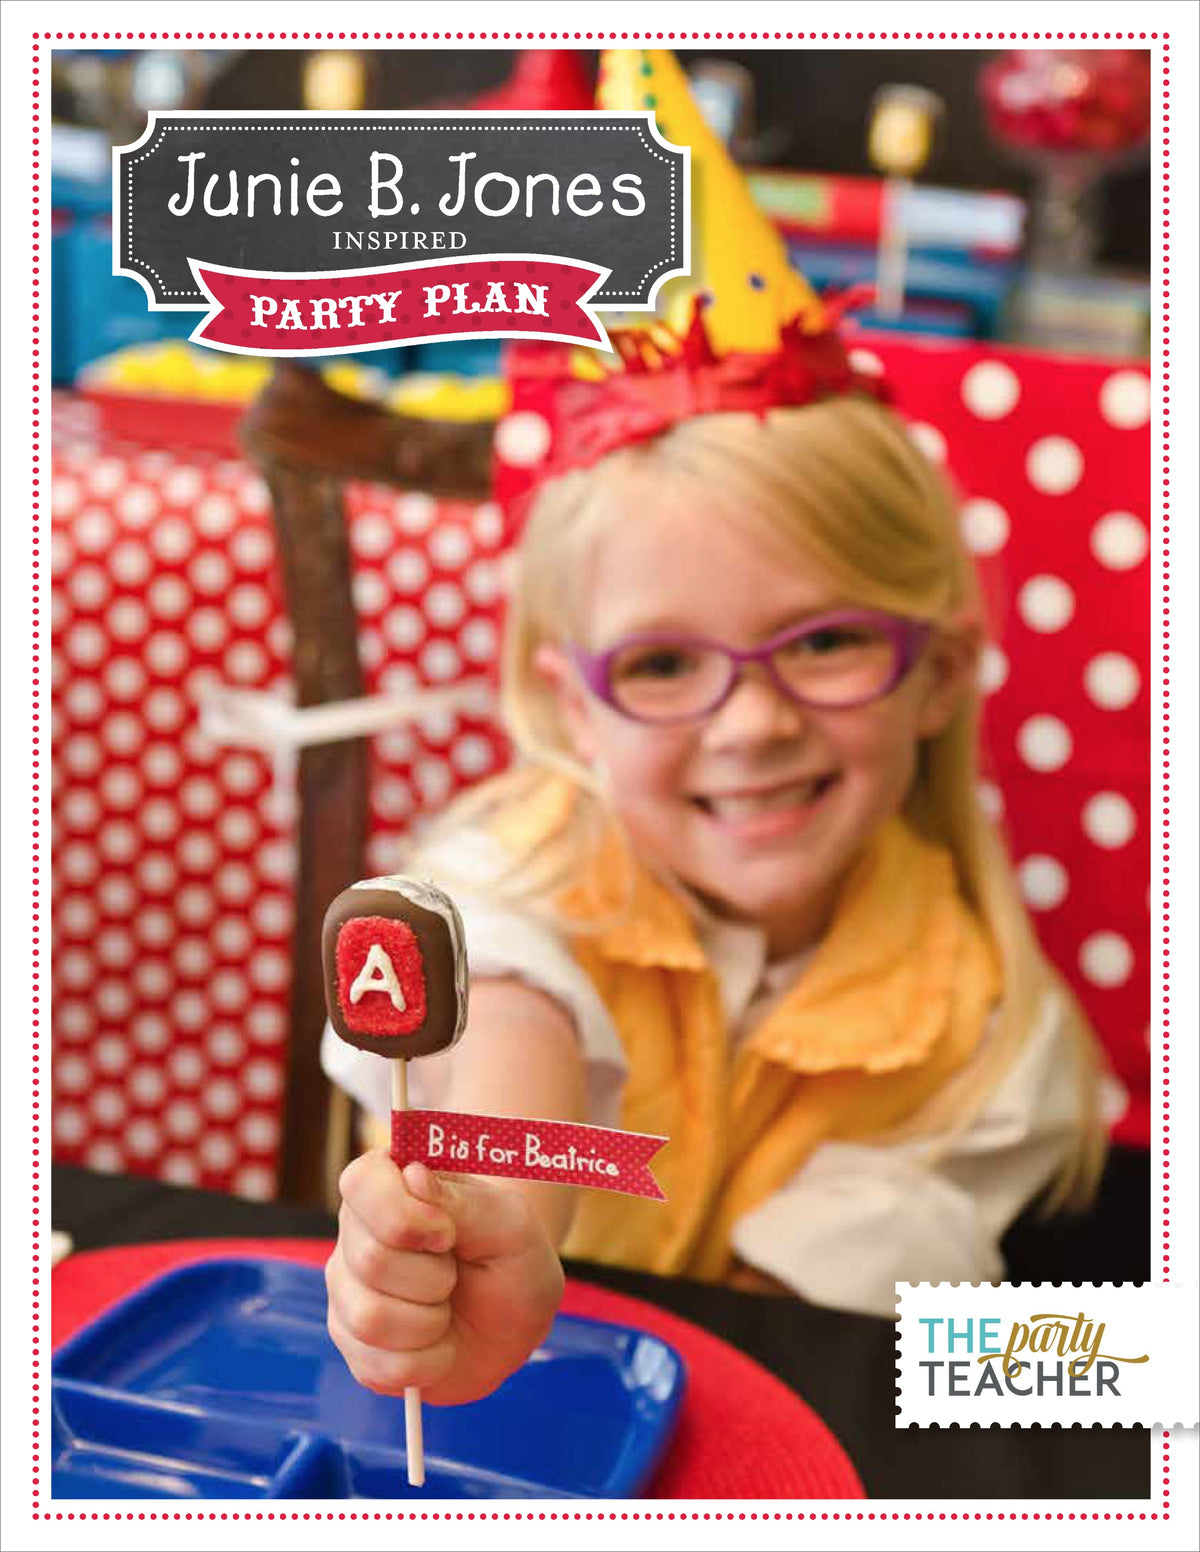 Junie B. Jones Party Plan INSTANT DOWNLOAD